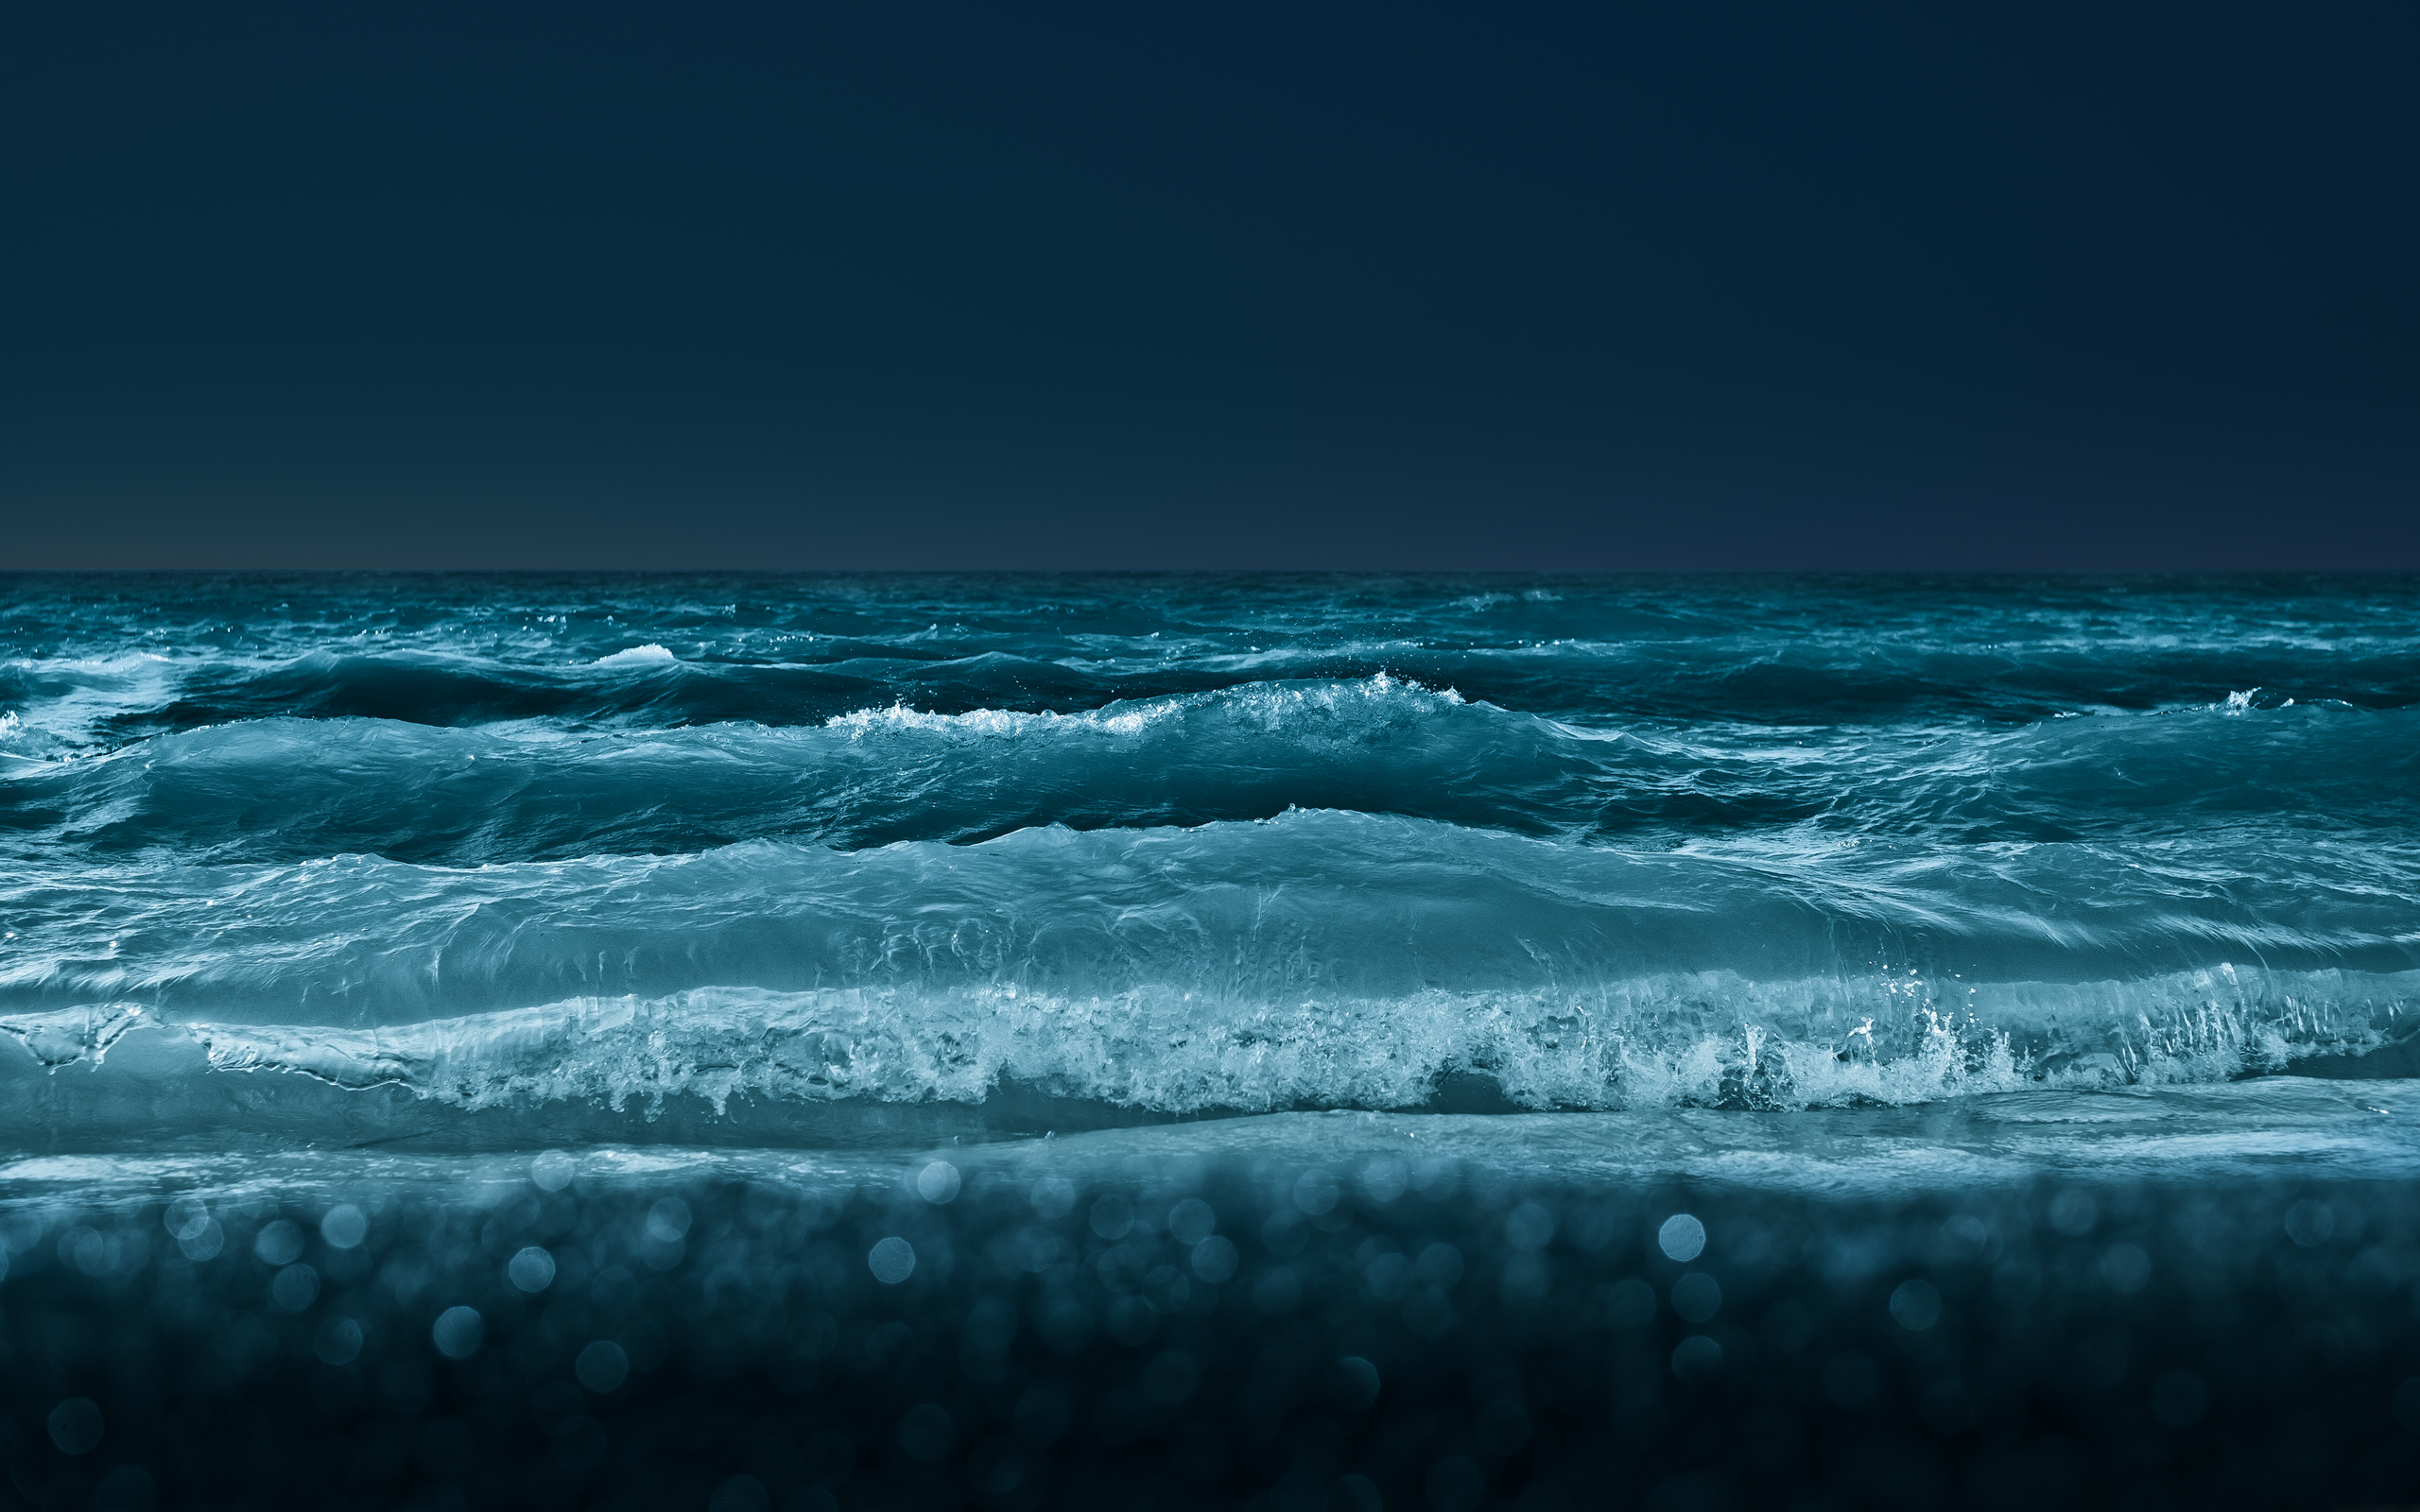 wave full hd wallpaper and background image | 2560x1600 | id:190691